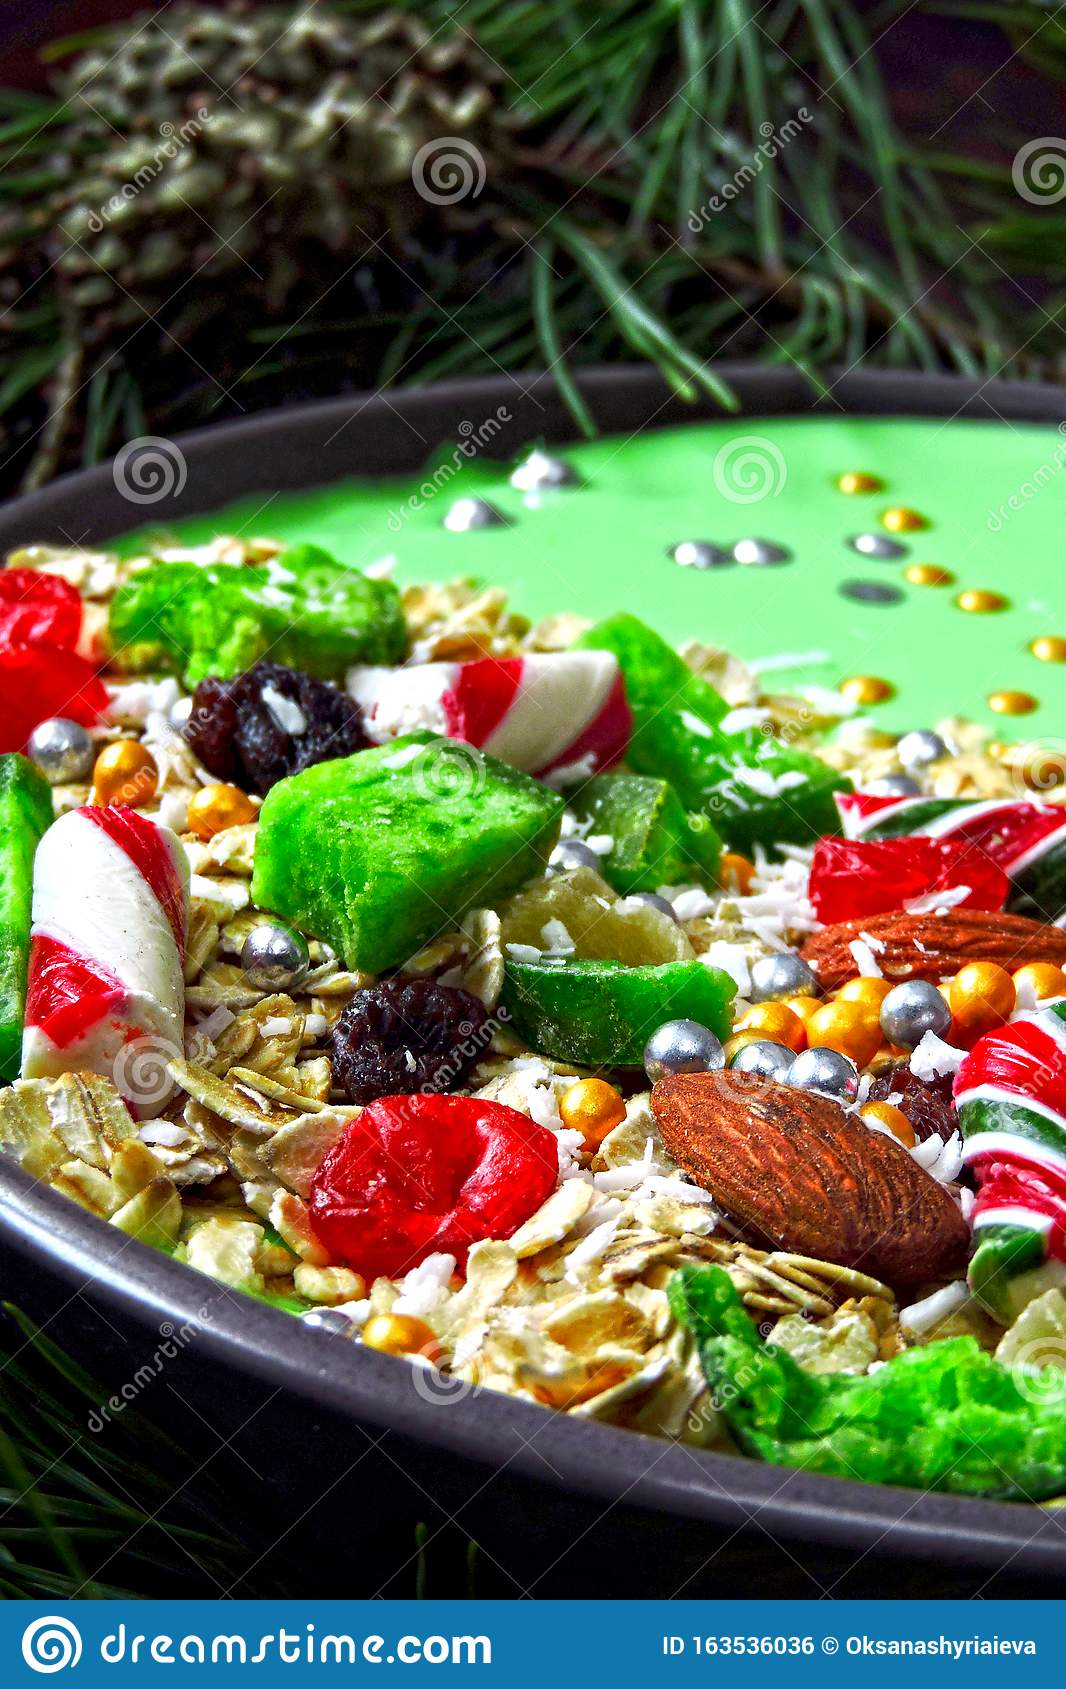 Christmas Breakfast Bowl With Green Smoothie And Christmas ...